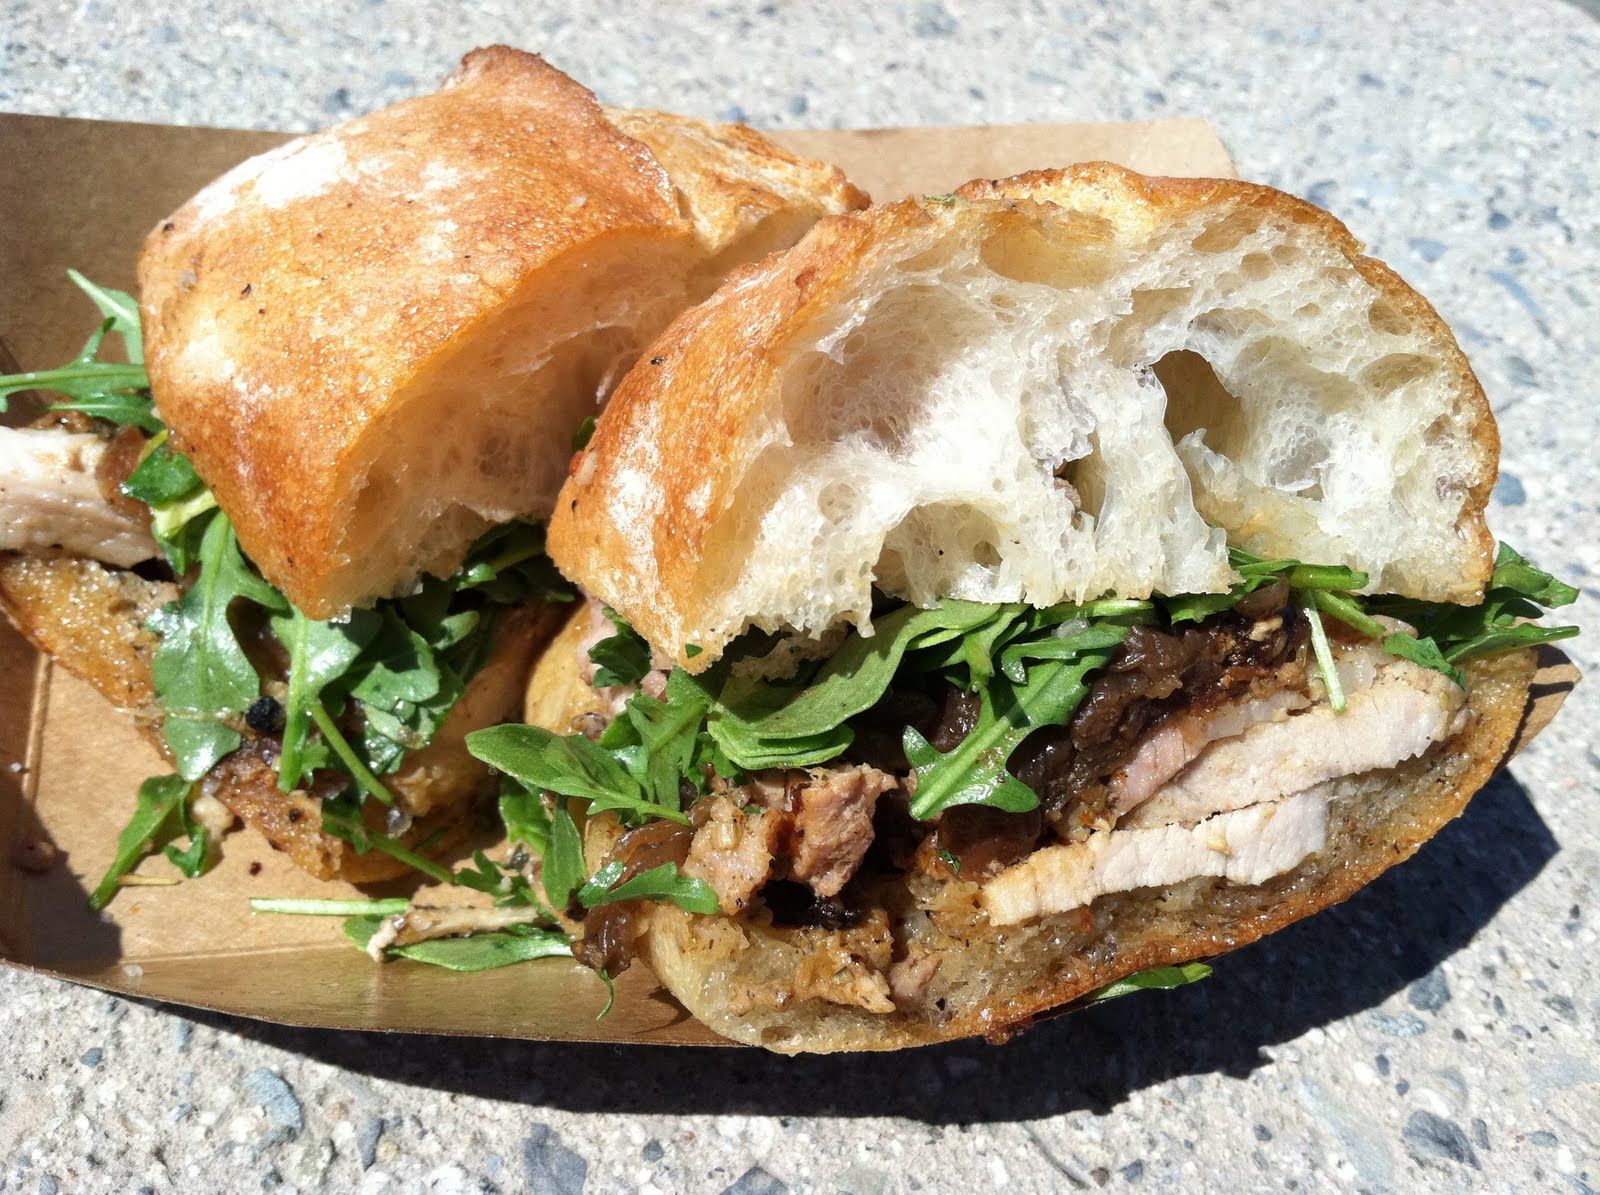 deep fried sous vide 36 hour all belly porchetta porchetta sandwich ...